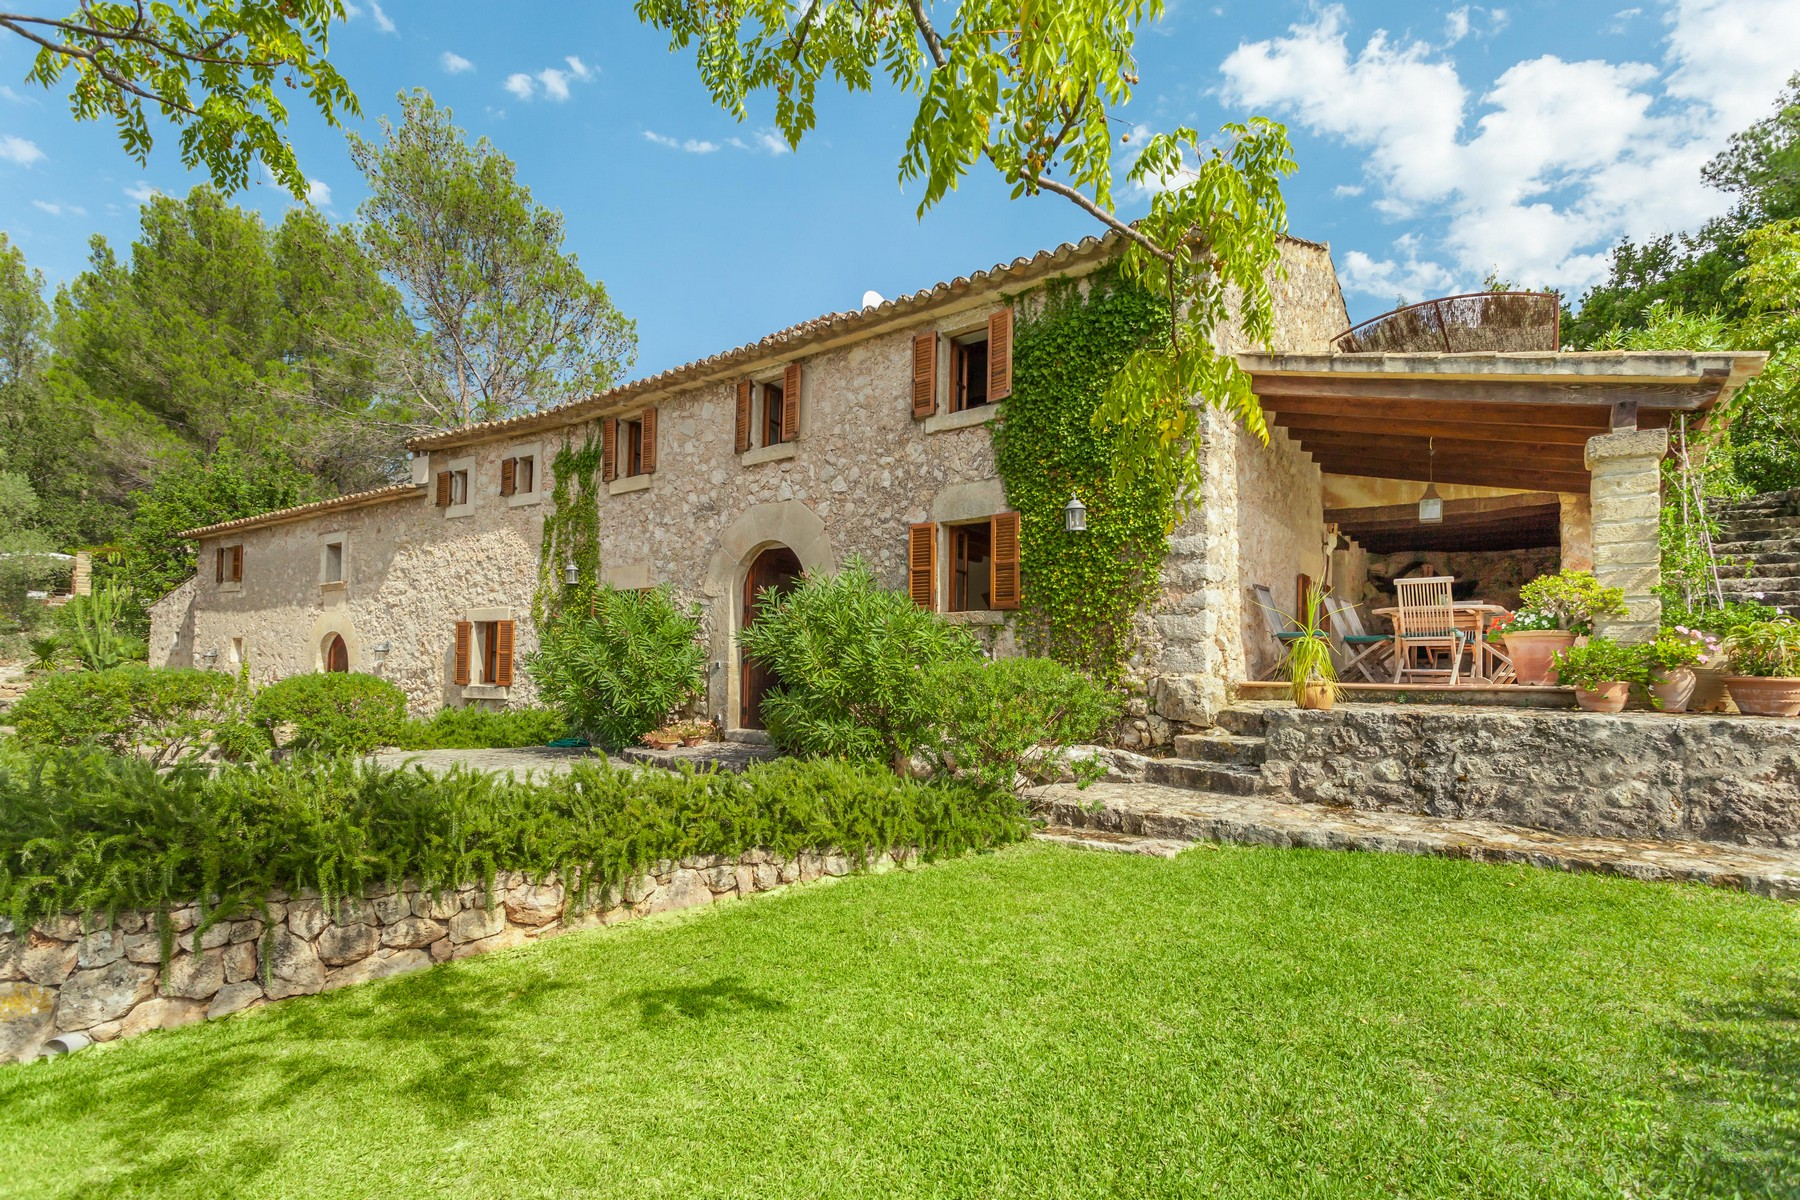 Single Family Home for Sale at Country estate with beautiful views in Pollensa Pollenca, Balearic Islands 07460 Spain